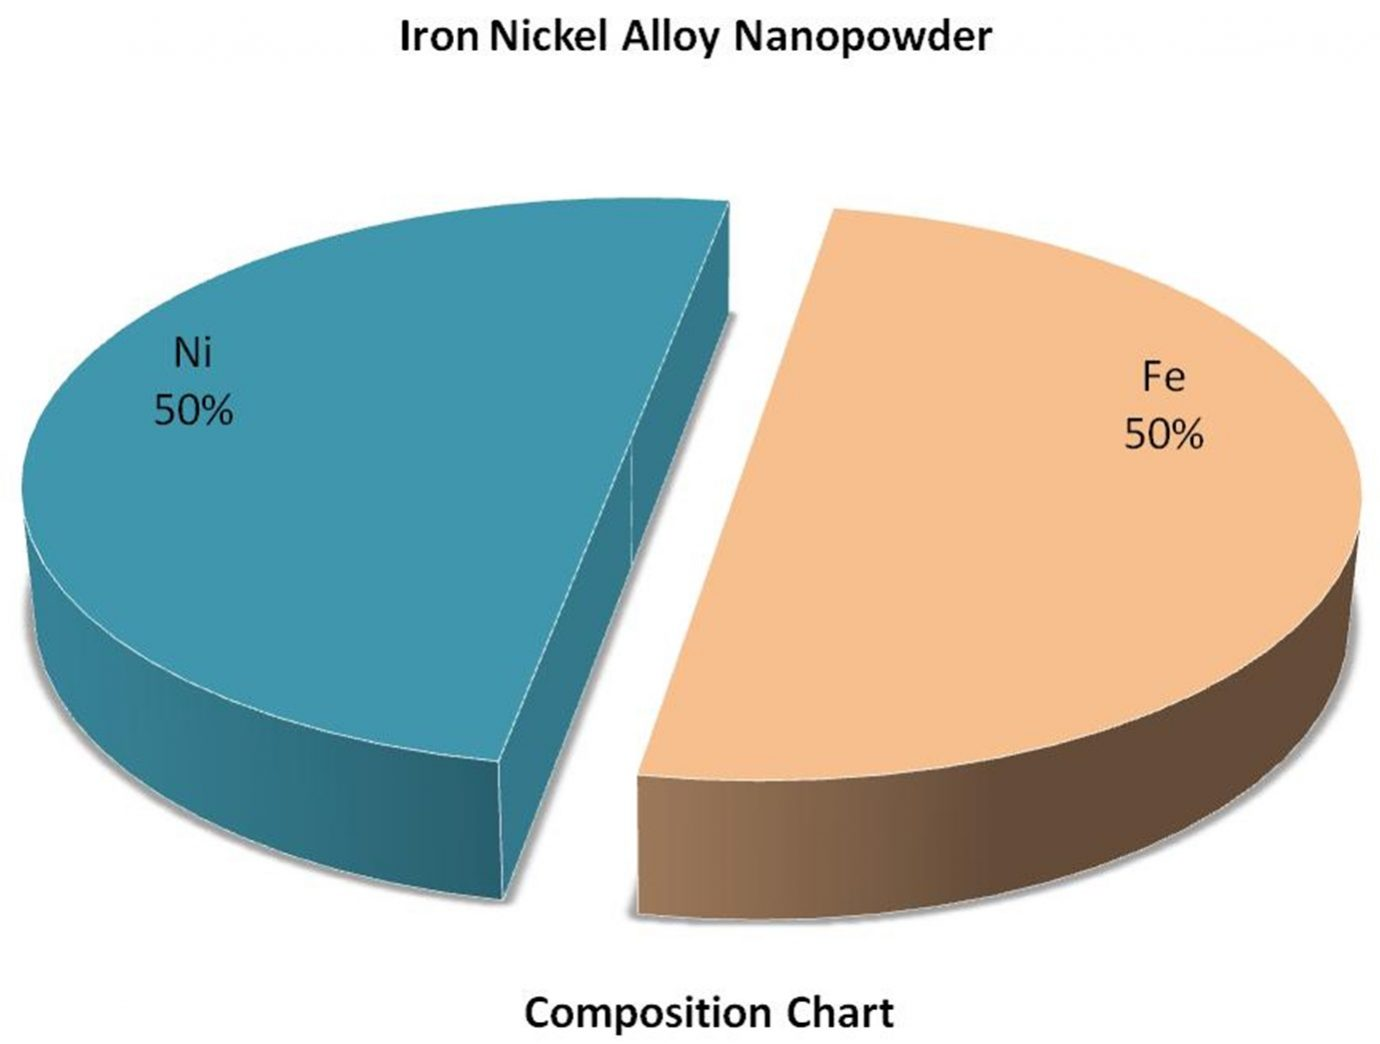 Composition Chart - Fe:Ni Alloy Nanoparticles